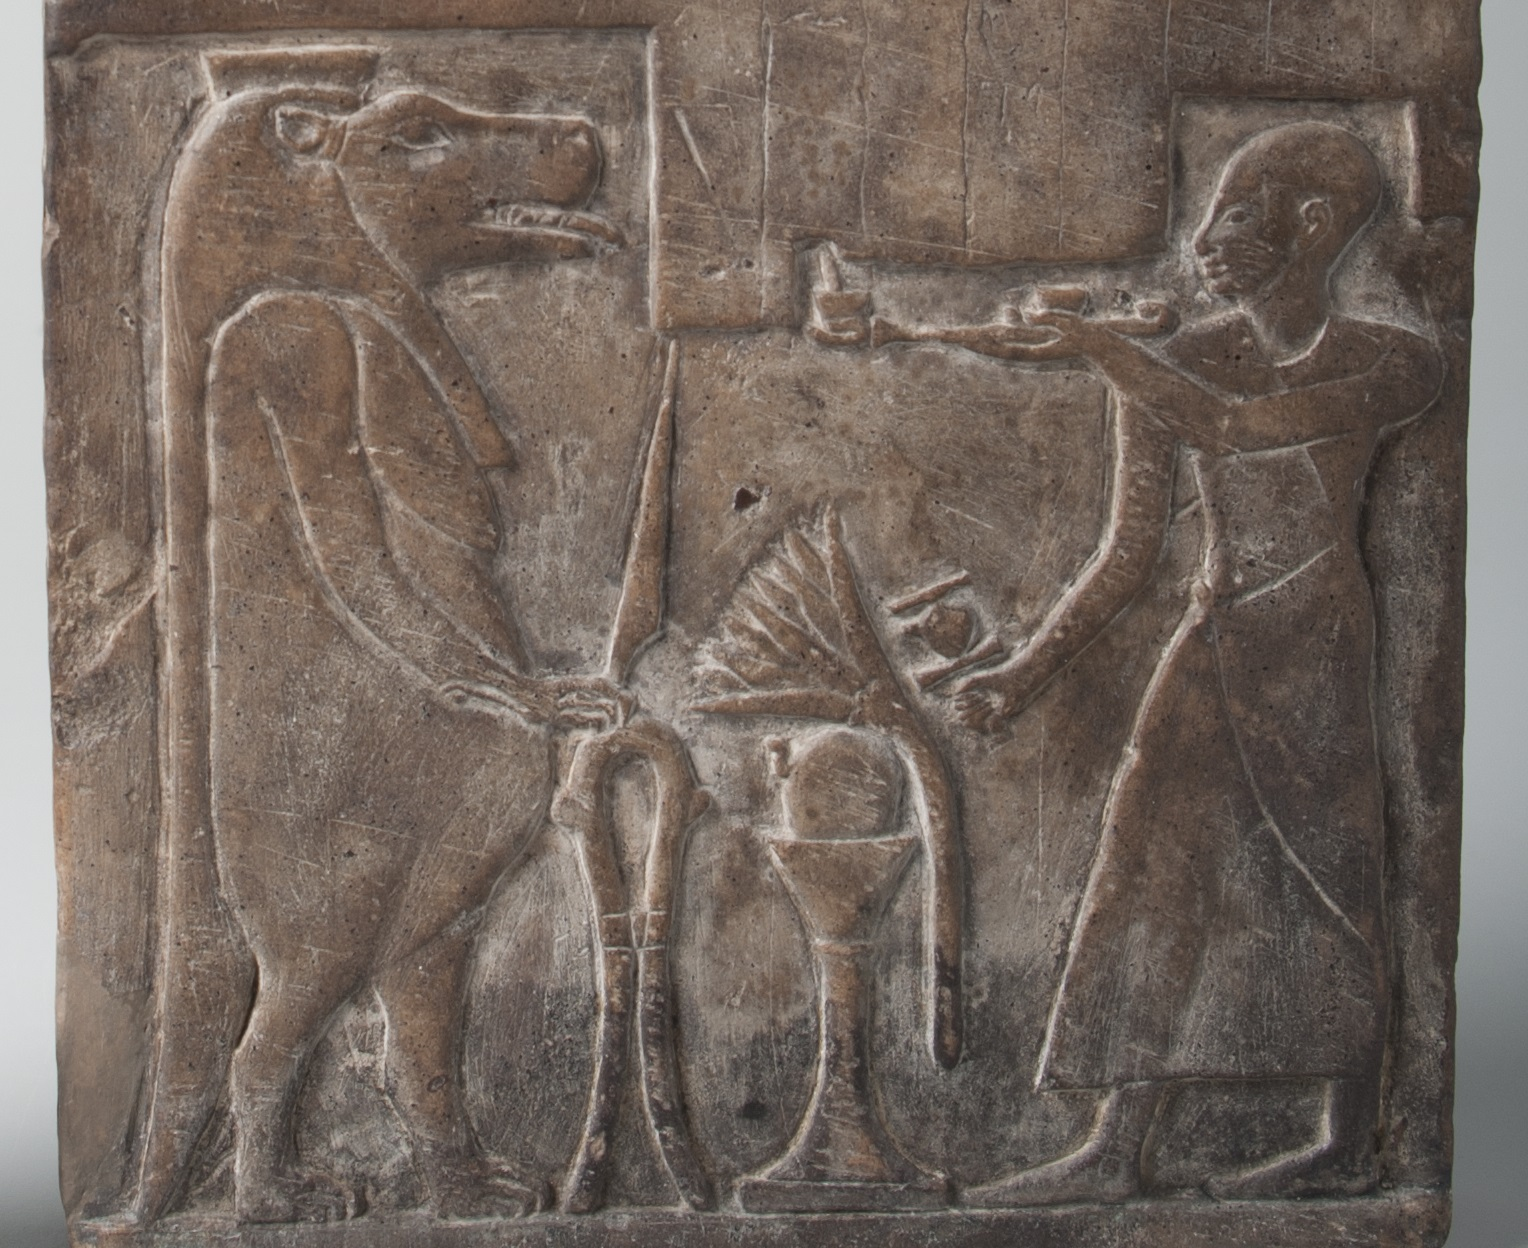 This image shows the lower register of the stele, featuring a bald man in front of the goddess Taweret, who has the face and body of a hippopotamus, the paws of a lion, and the tail of a crocodile.